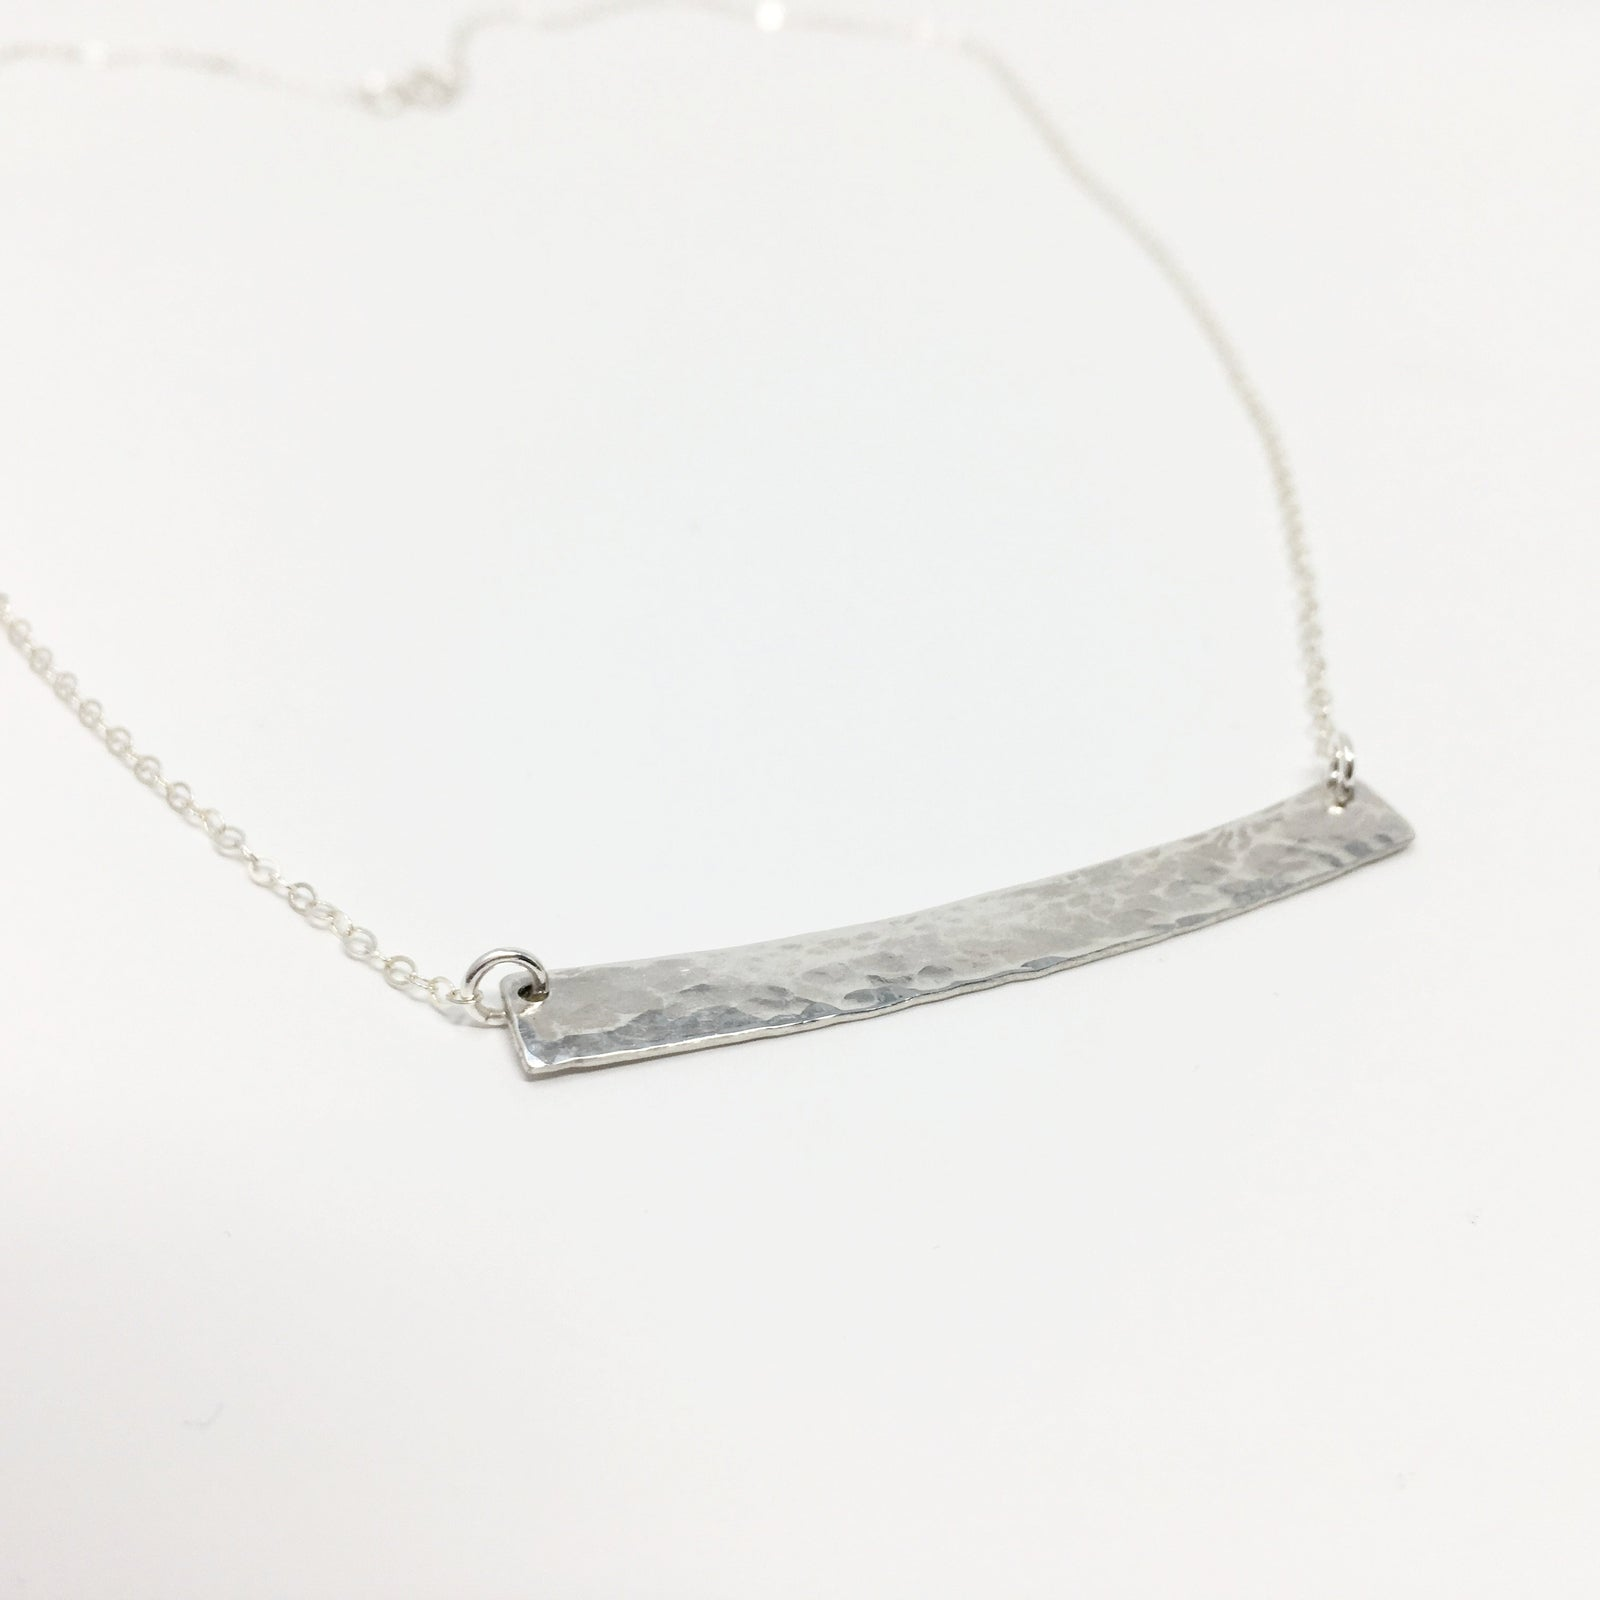 IMPRESSIONS BAR NECKLACE | STERLING SILVER